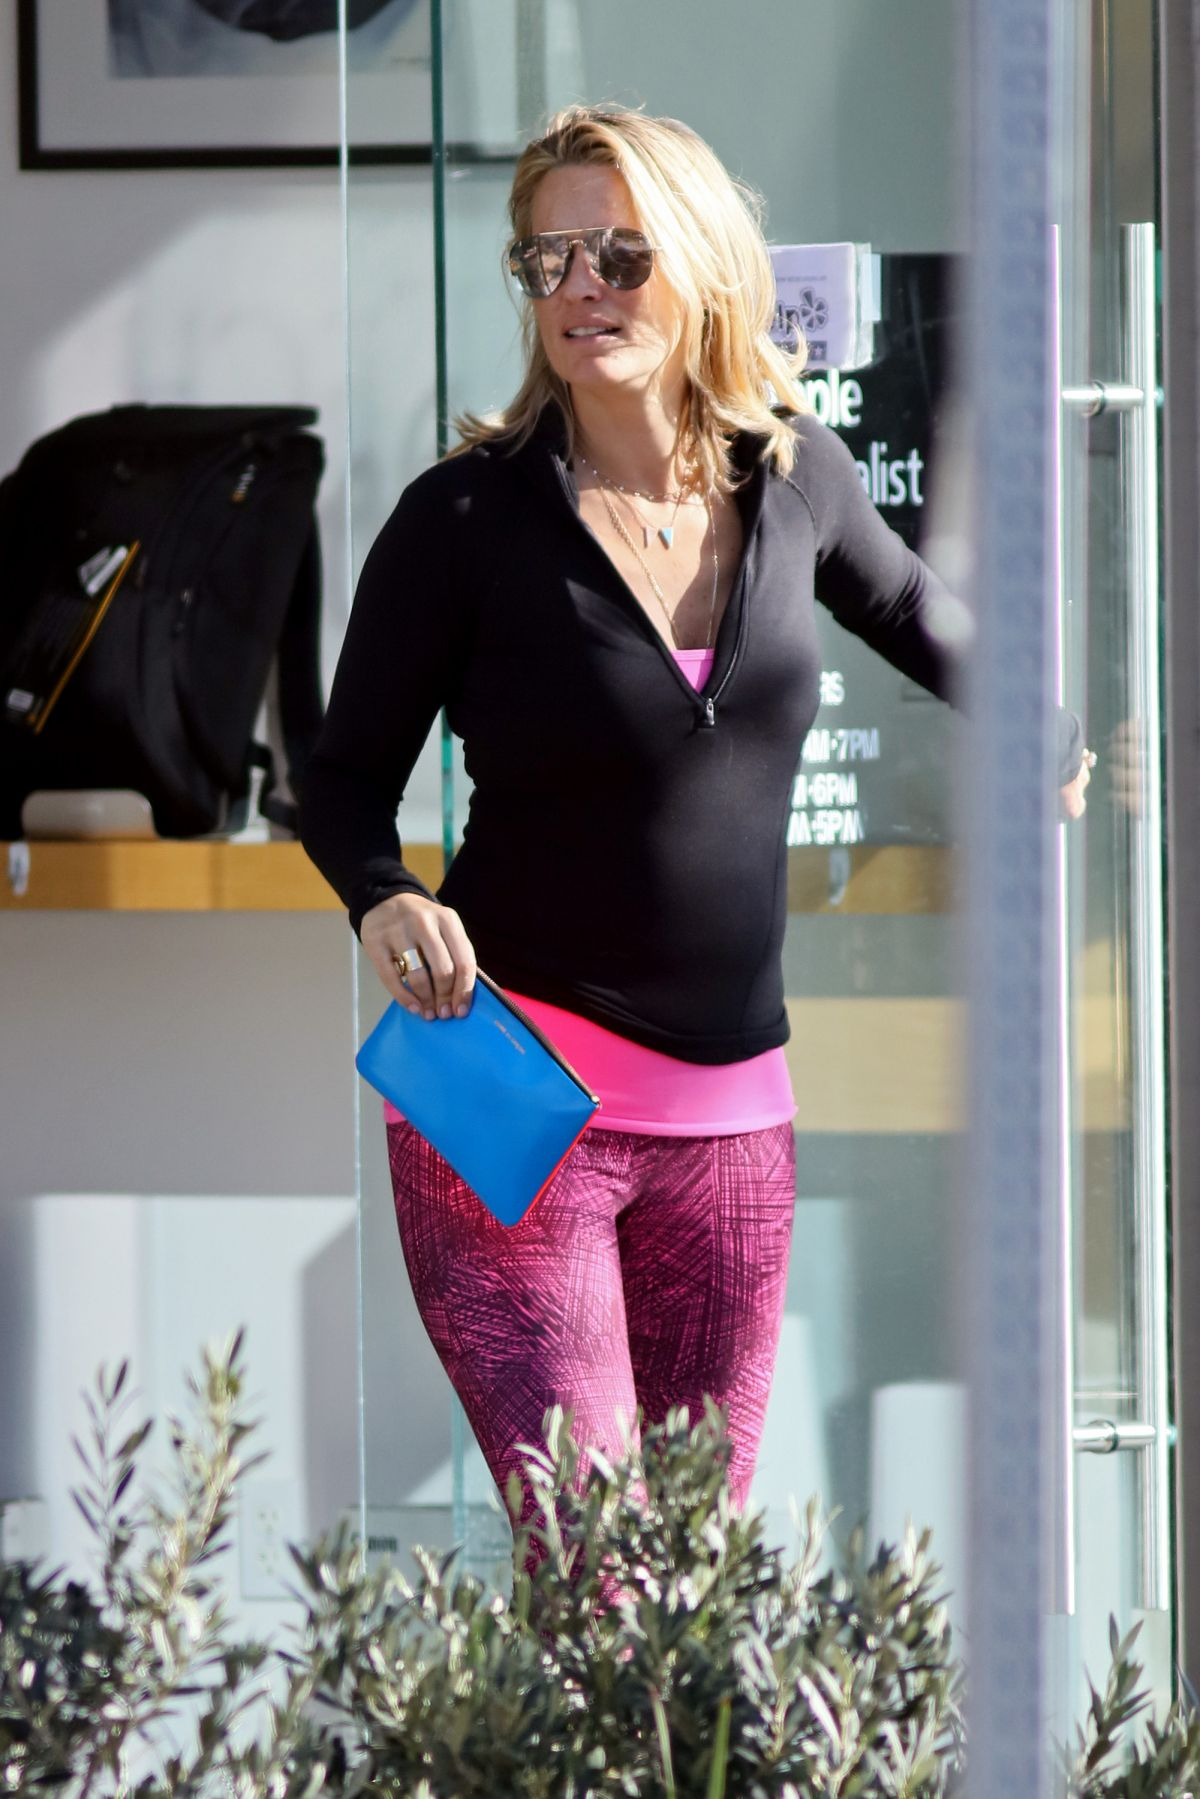 Molly sims archives page 2 of 7 hawtcelebs hawtcelebs - Molly Sims Archives Page 2 Of 7 Hawtcelebs Hawtcelebs 11